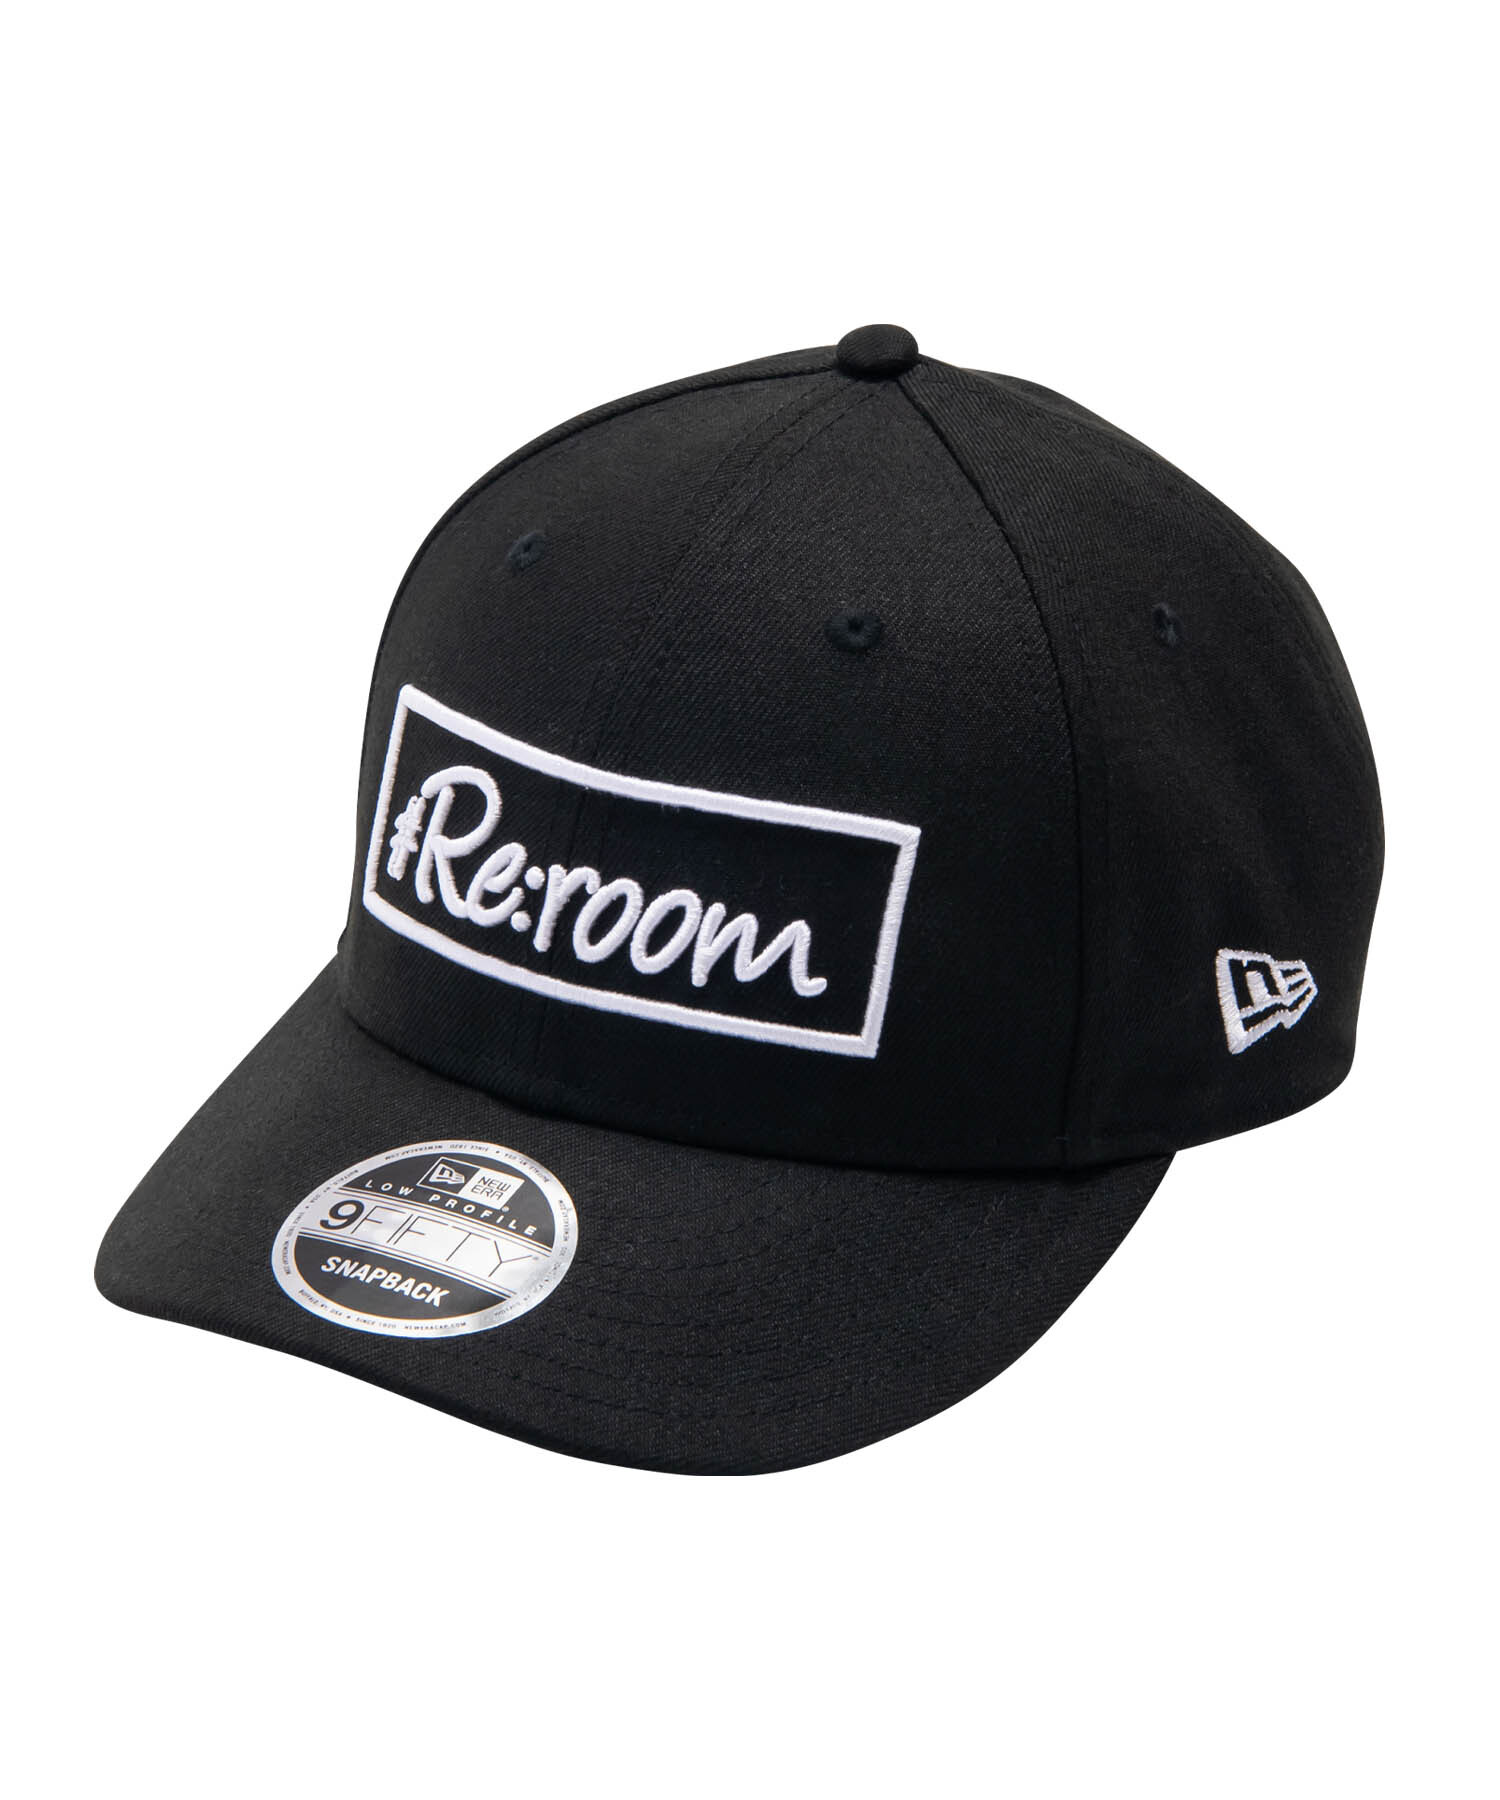 #Re:room×NEW ERA 9FIFTY™ LOW PROFILE[REH105]